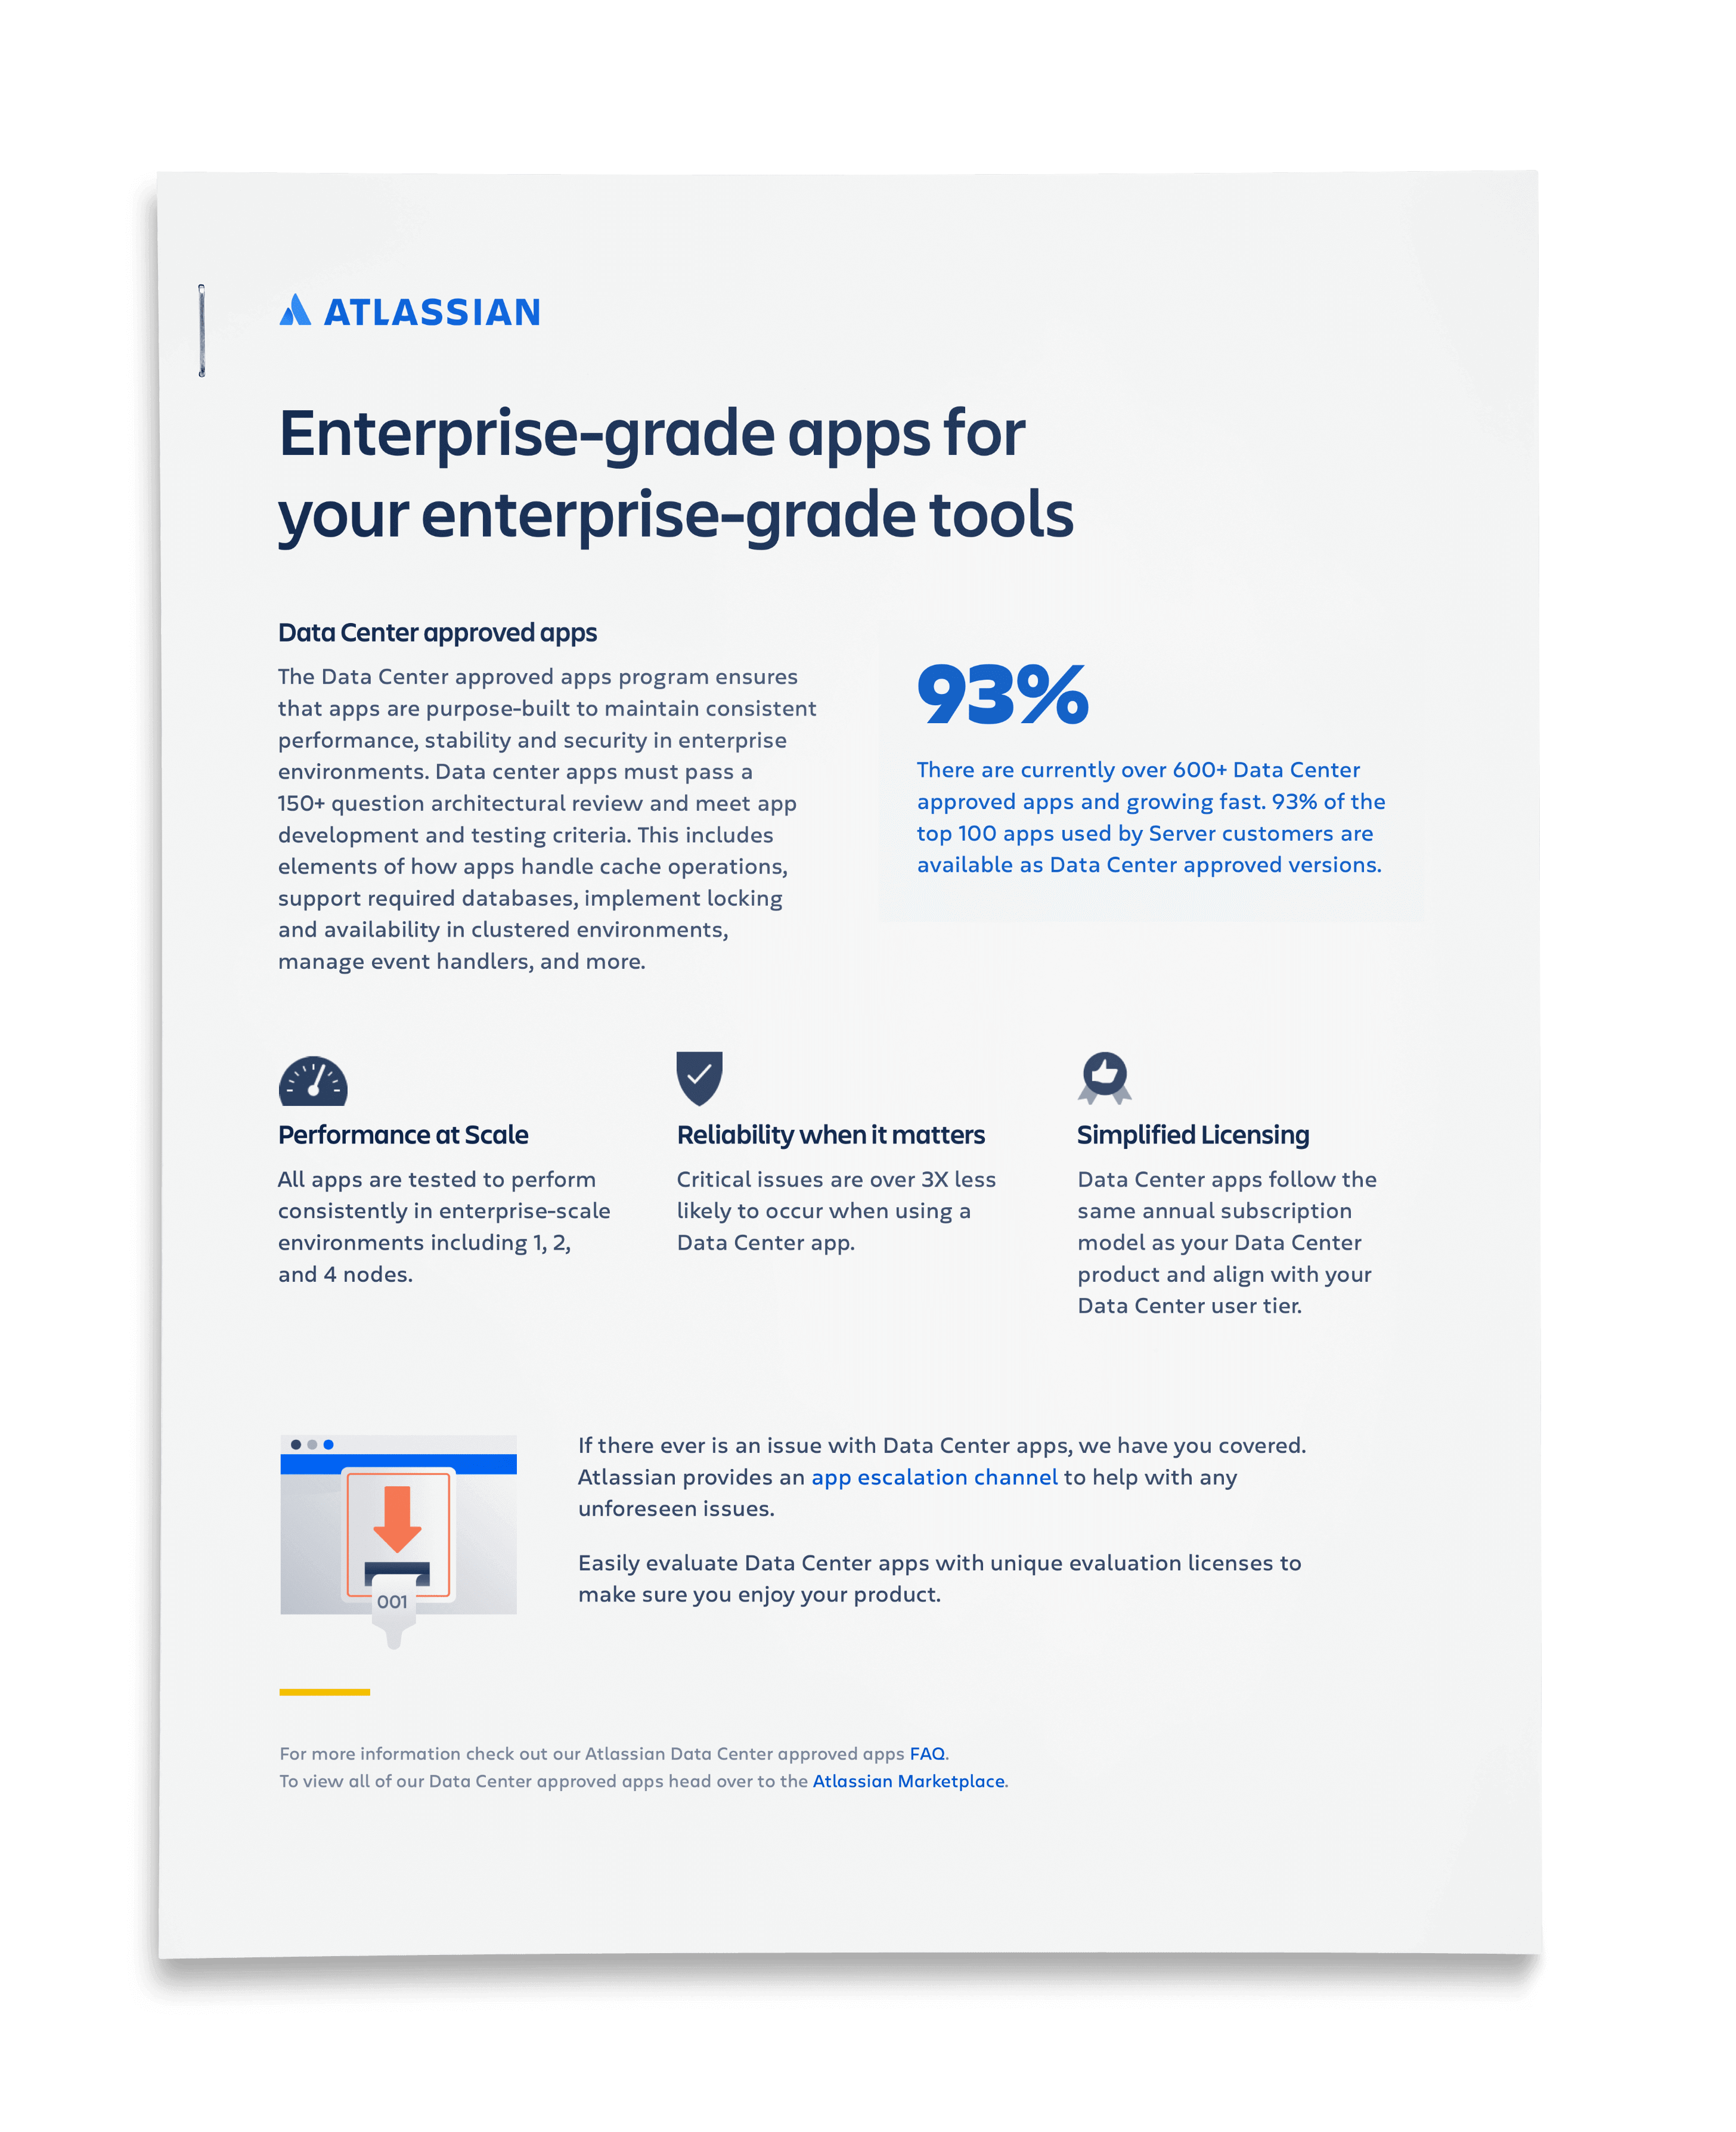 Enterprise-grade apps for your enterprise-grade tools one pager